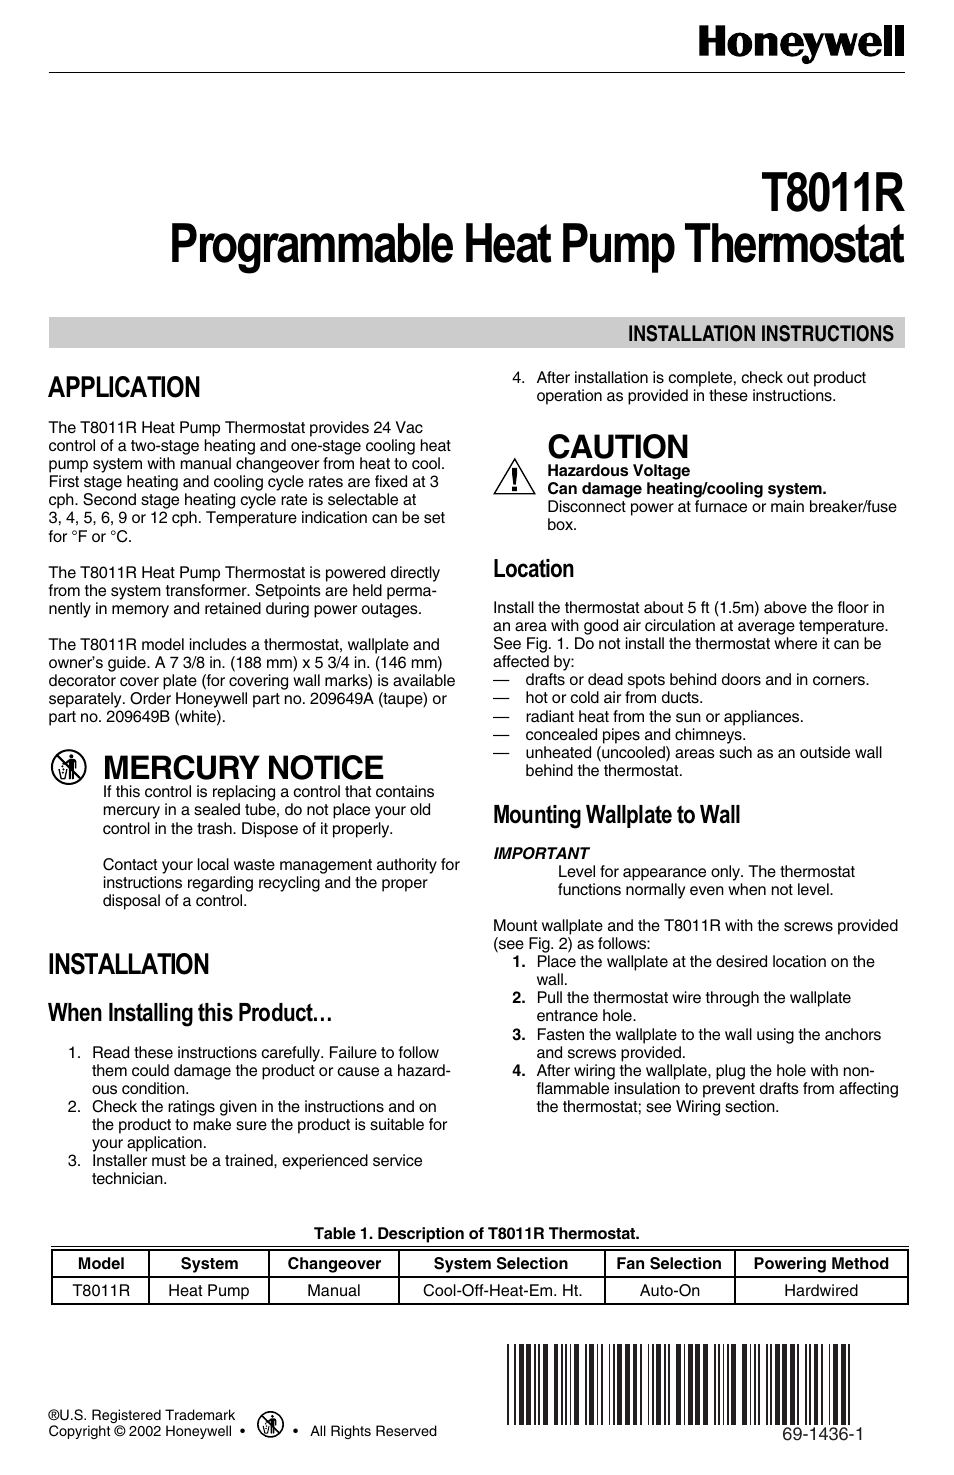 Honeywell Programmable Heat Pump T8011R User Manual | 6 pages